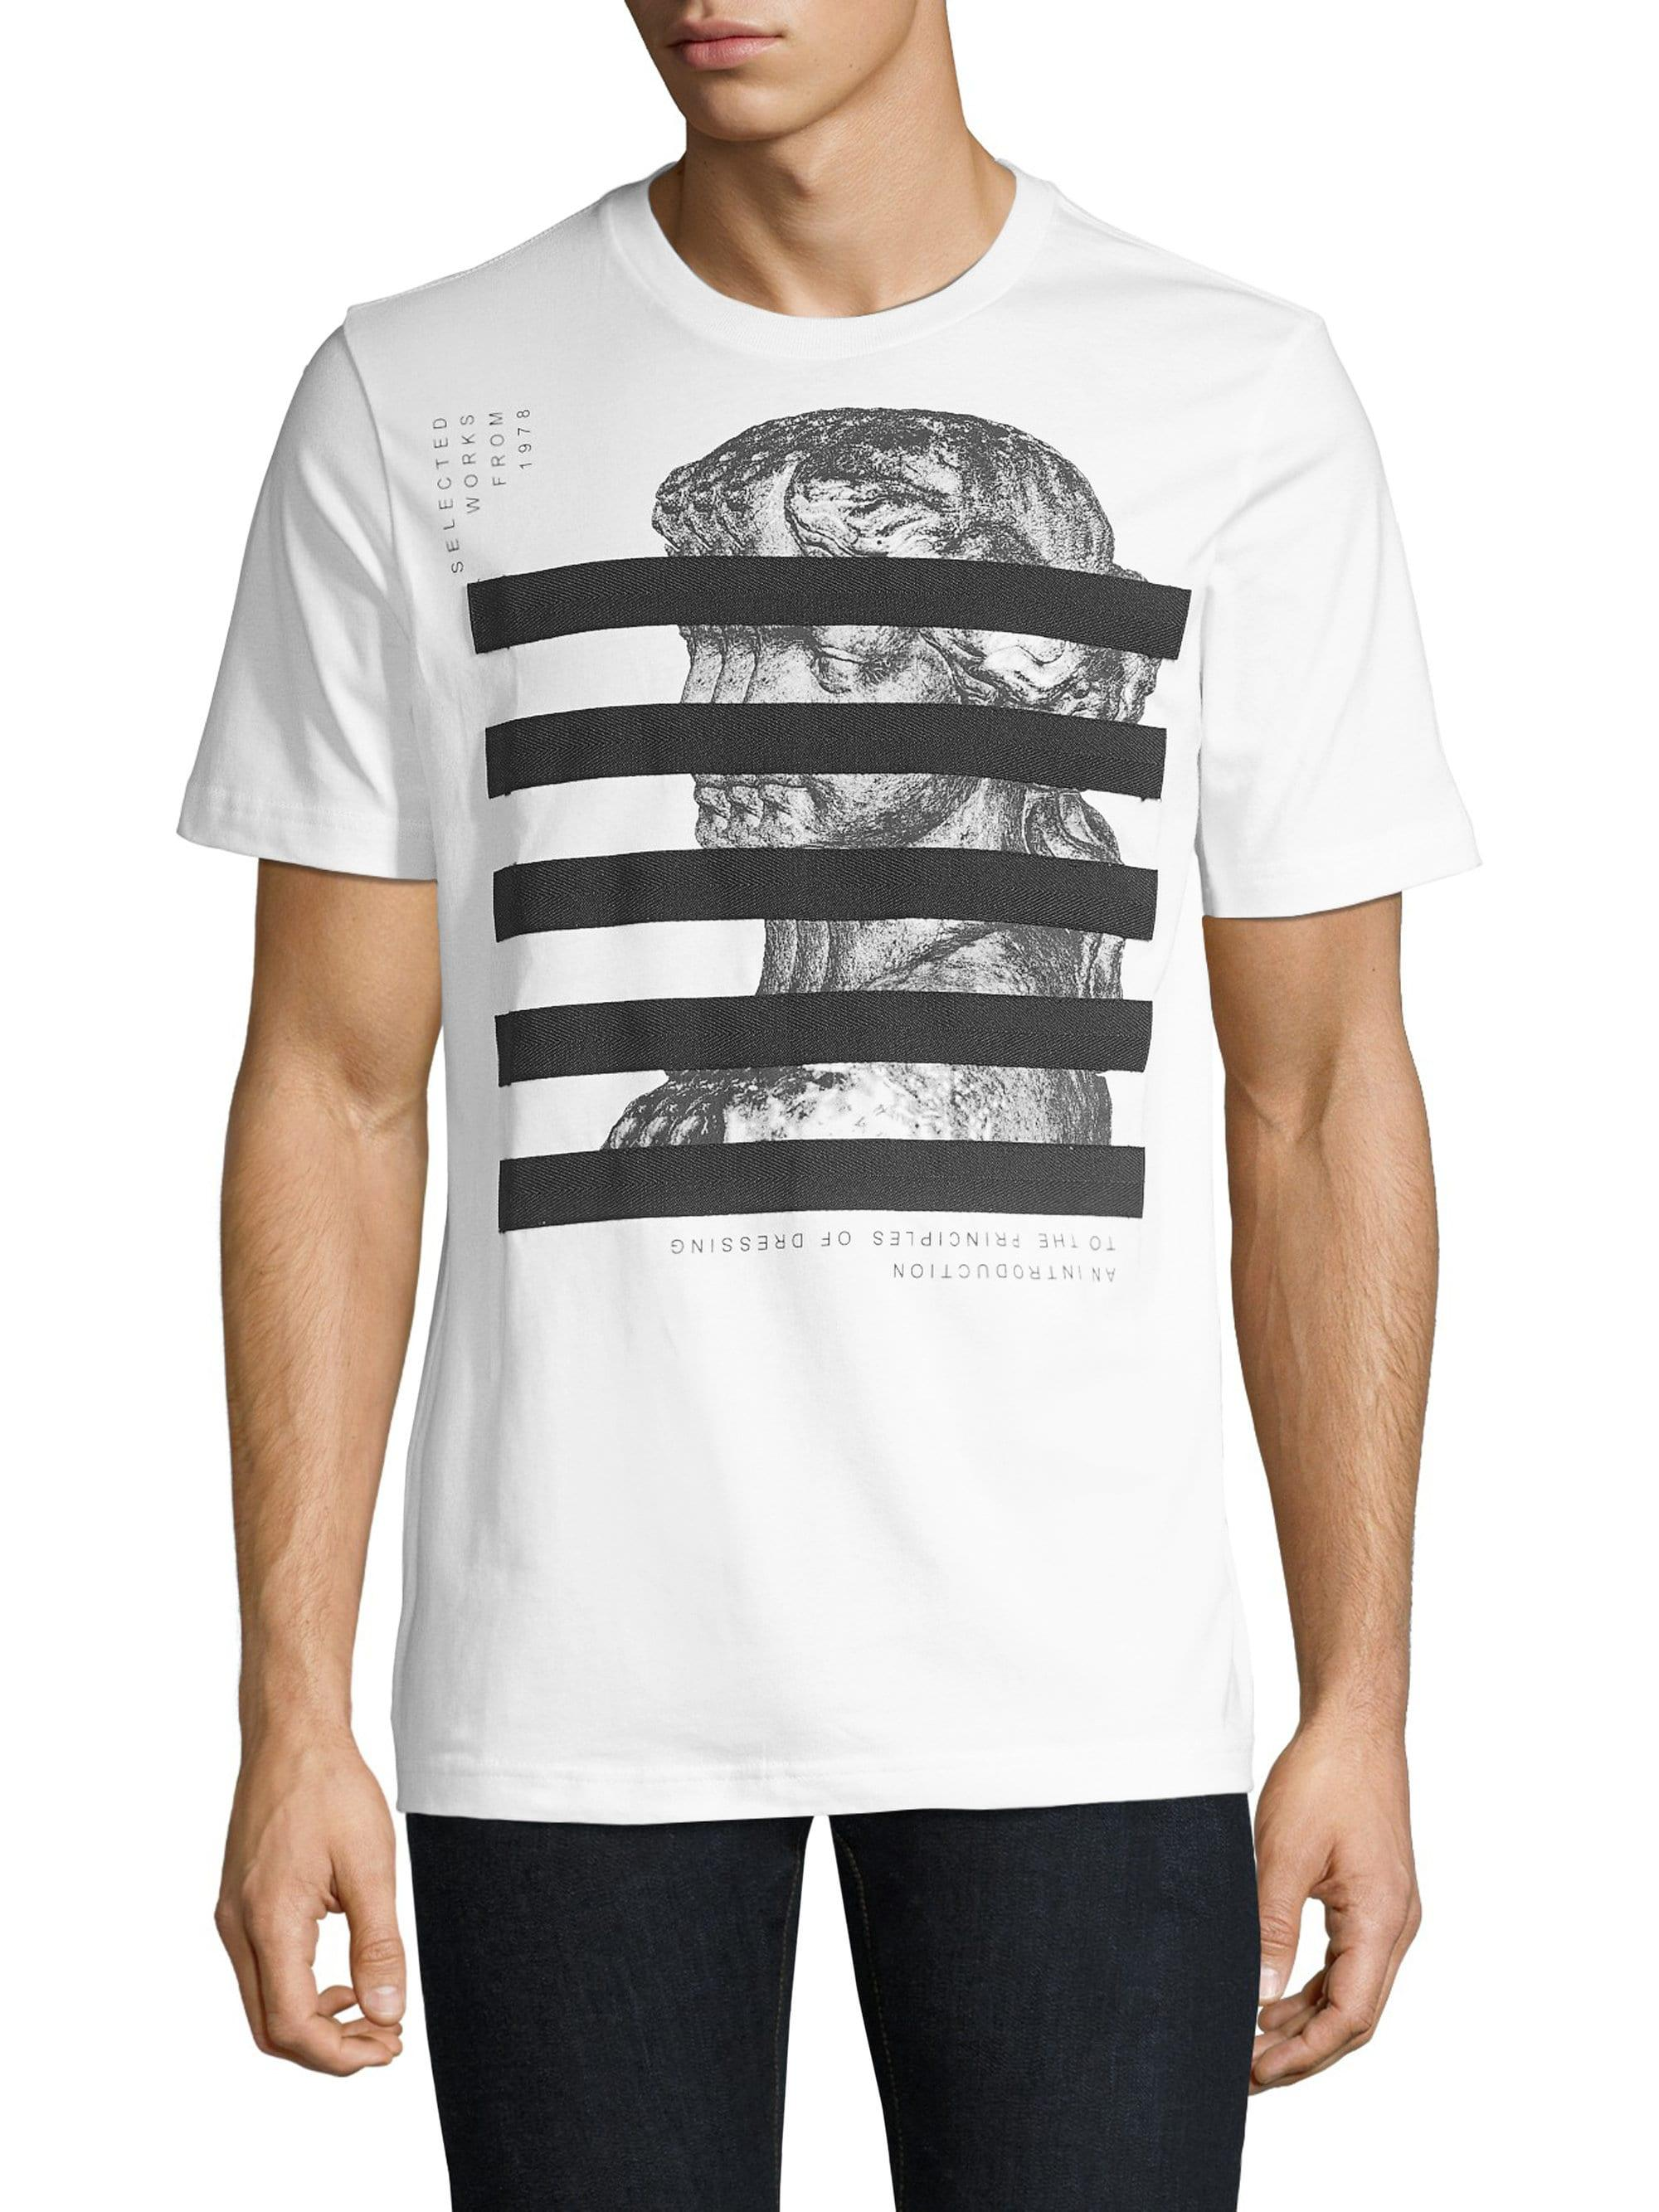 b335fa2d Lyst - DIESEL Just-yo Graphic T-shirt in White for Men